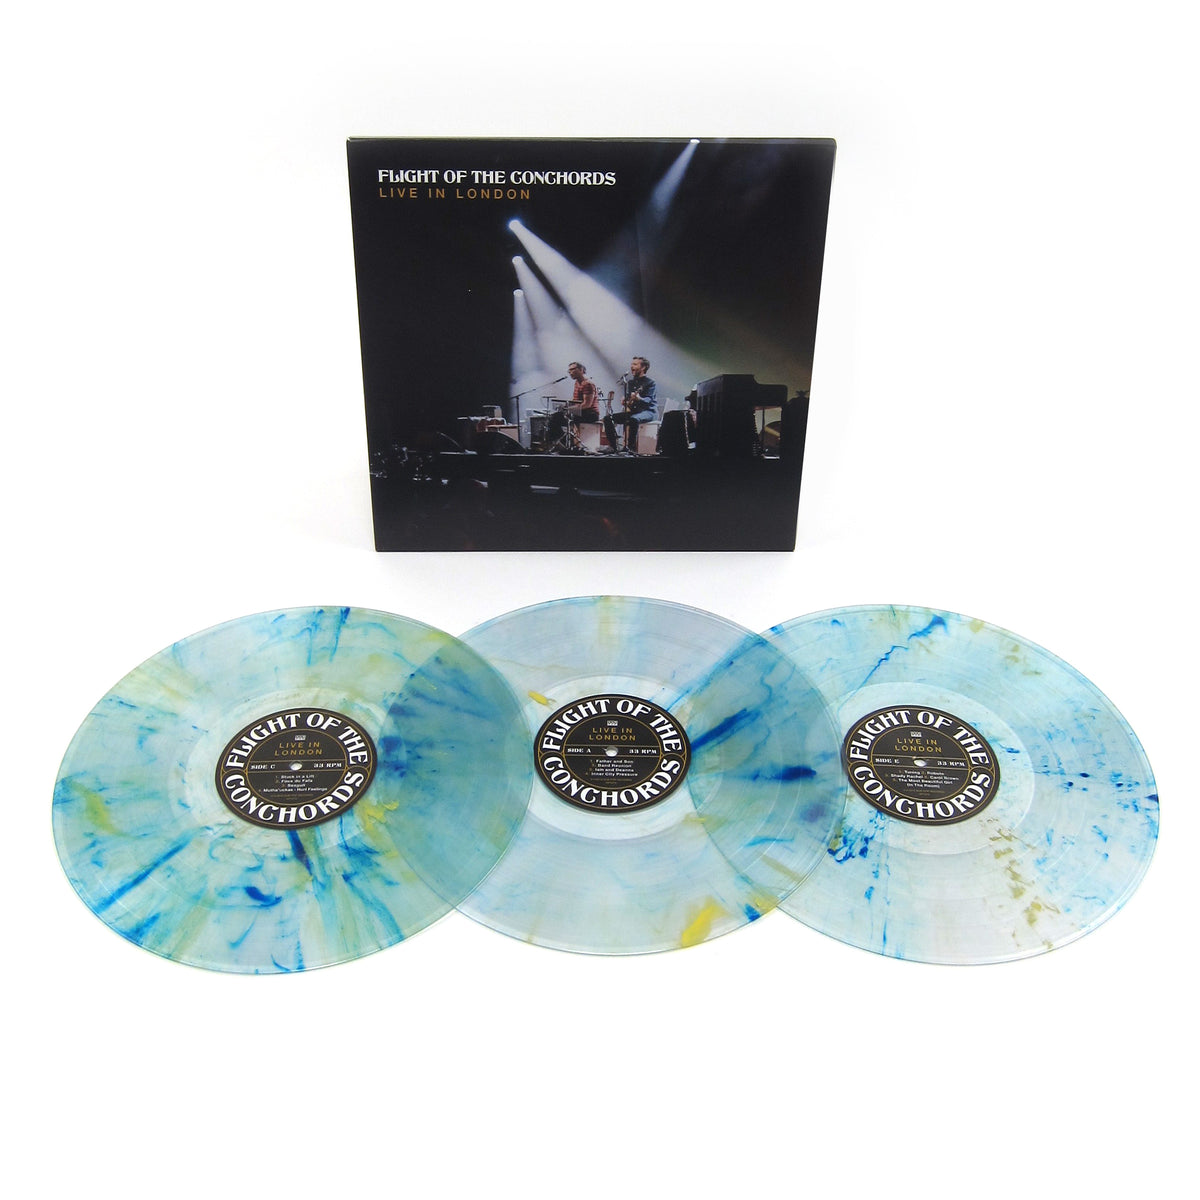 Flight Of The Conchords: Live In London (Loser Edition Colored Vinyl) Vinyl 3LP